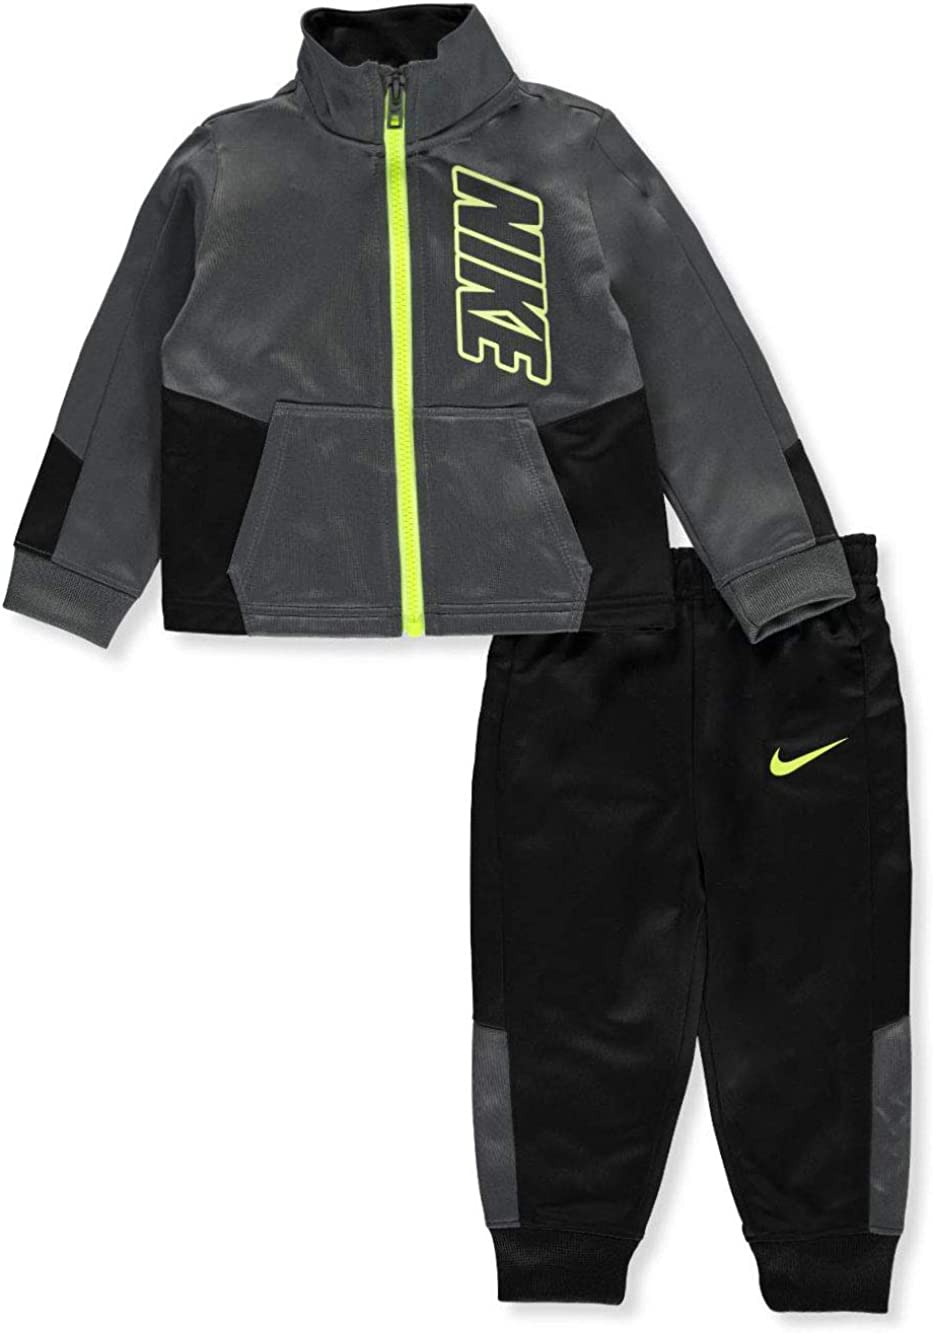 Nike Baby Boys' 2-Piece Tracksuit Pants Max Industry No. 1 56% OFF Set Black -